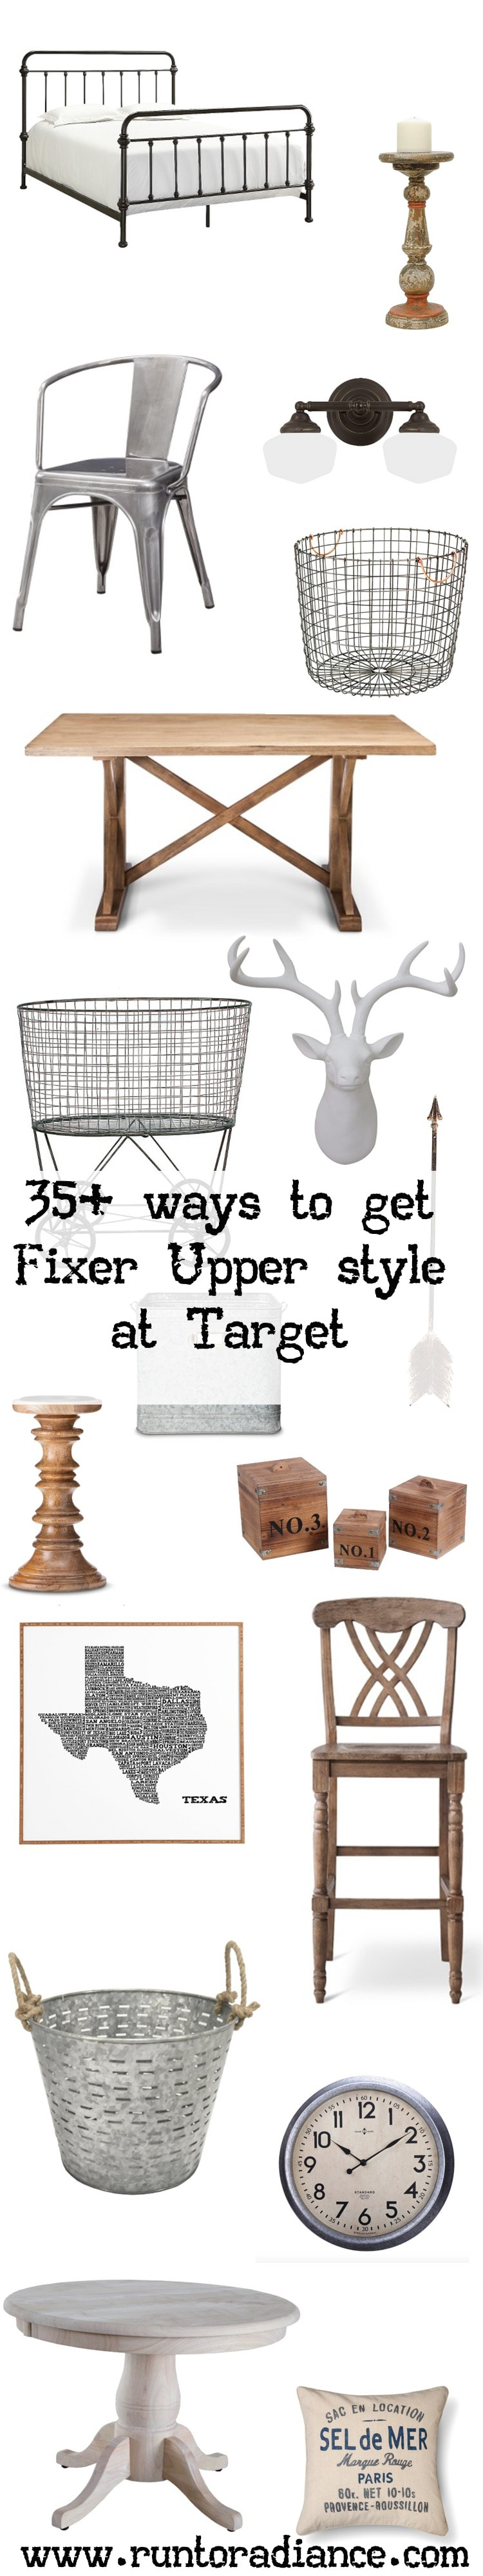 Fixer upper style 35 target items that will get you the for Do people on fixer upper get to keep the furniture